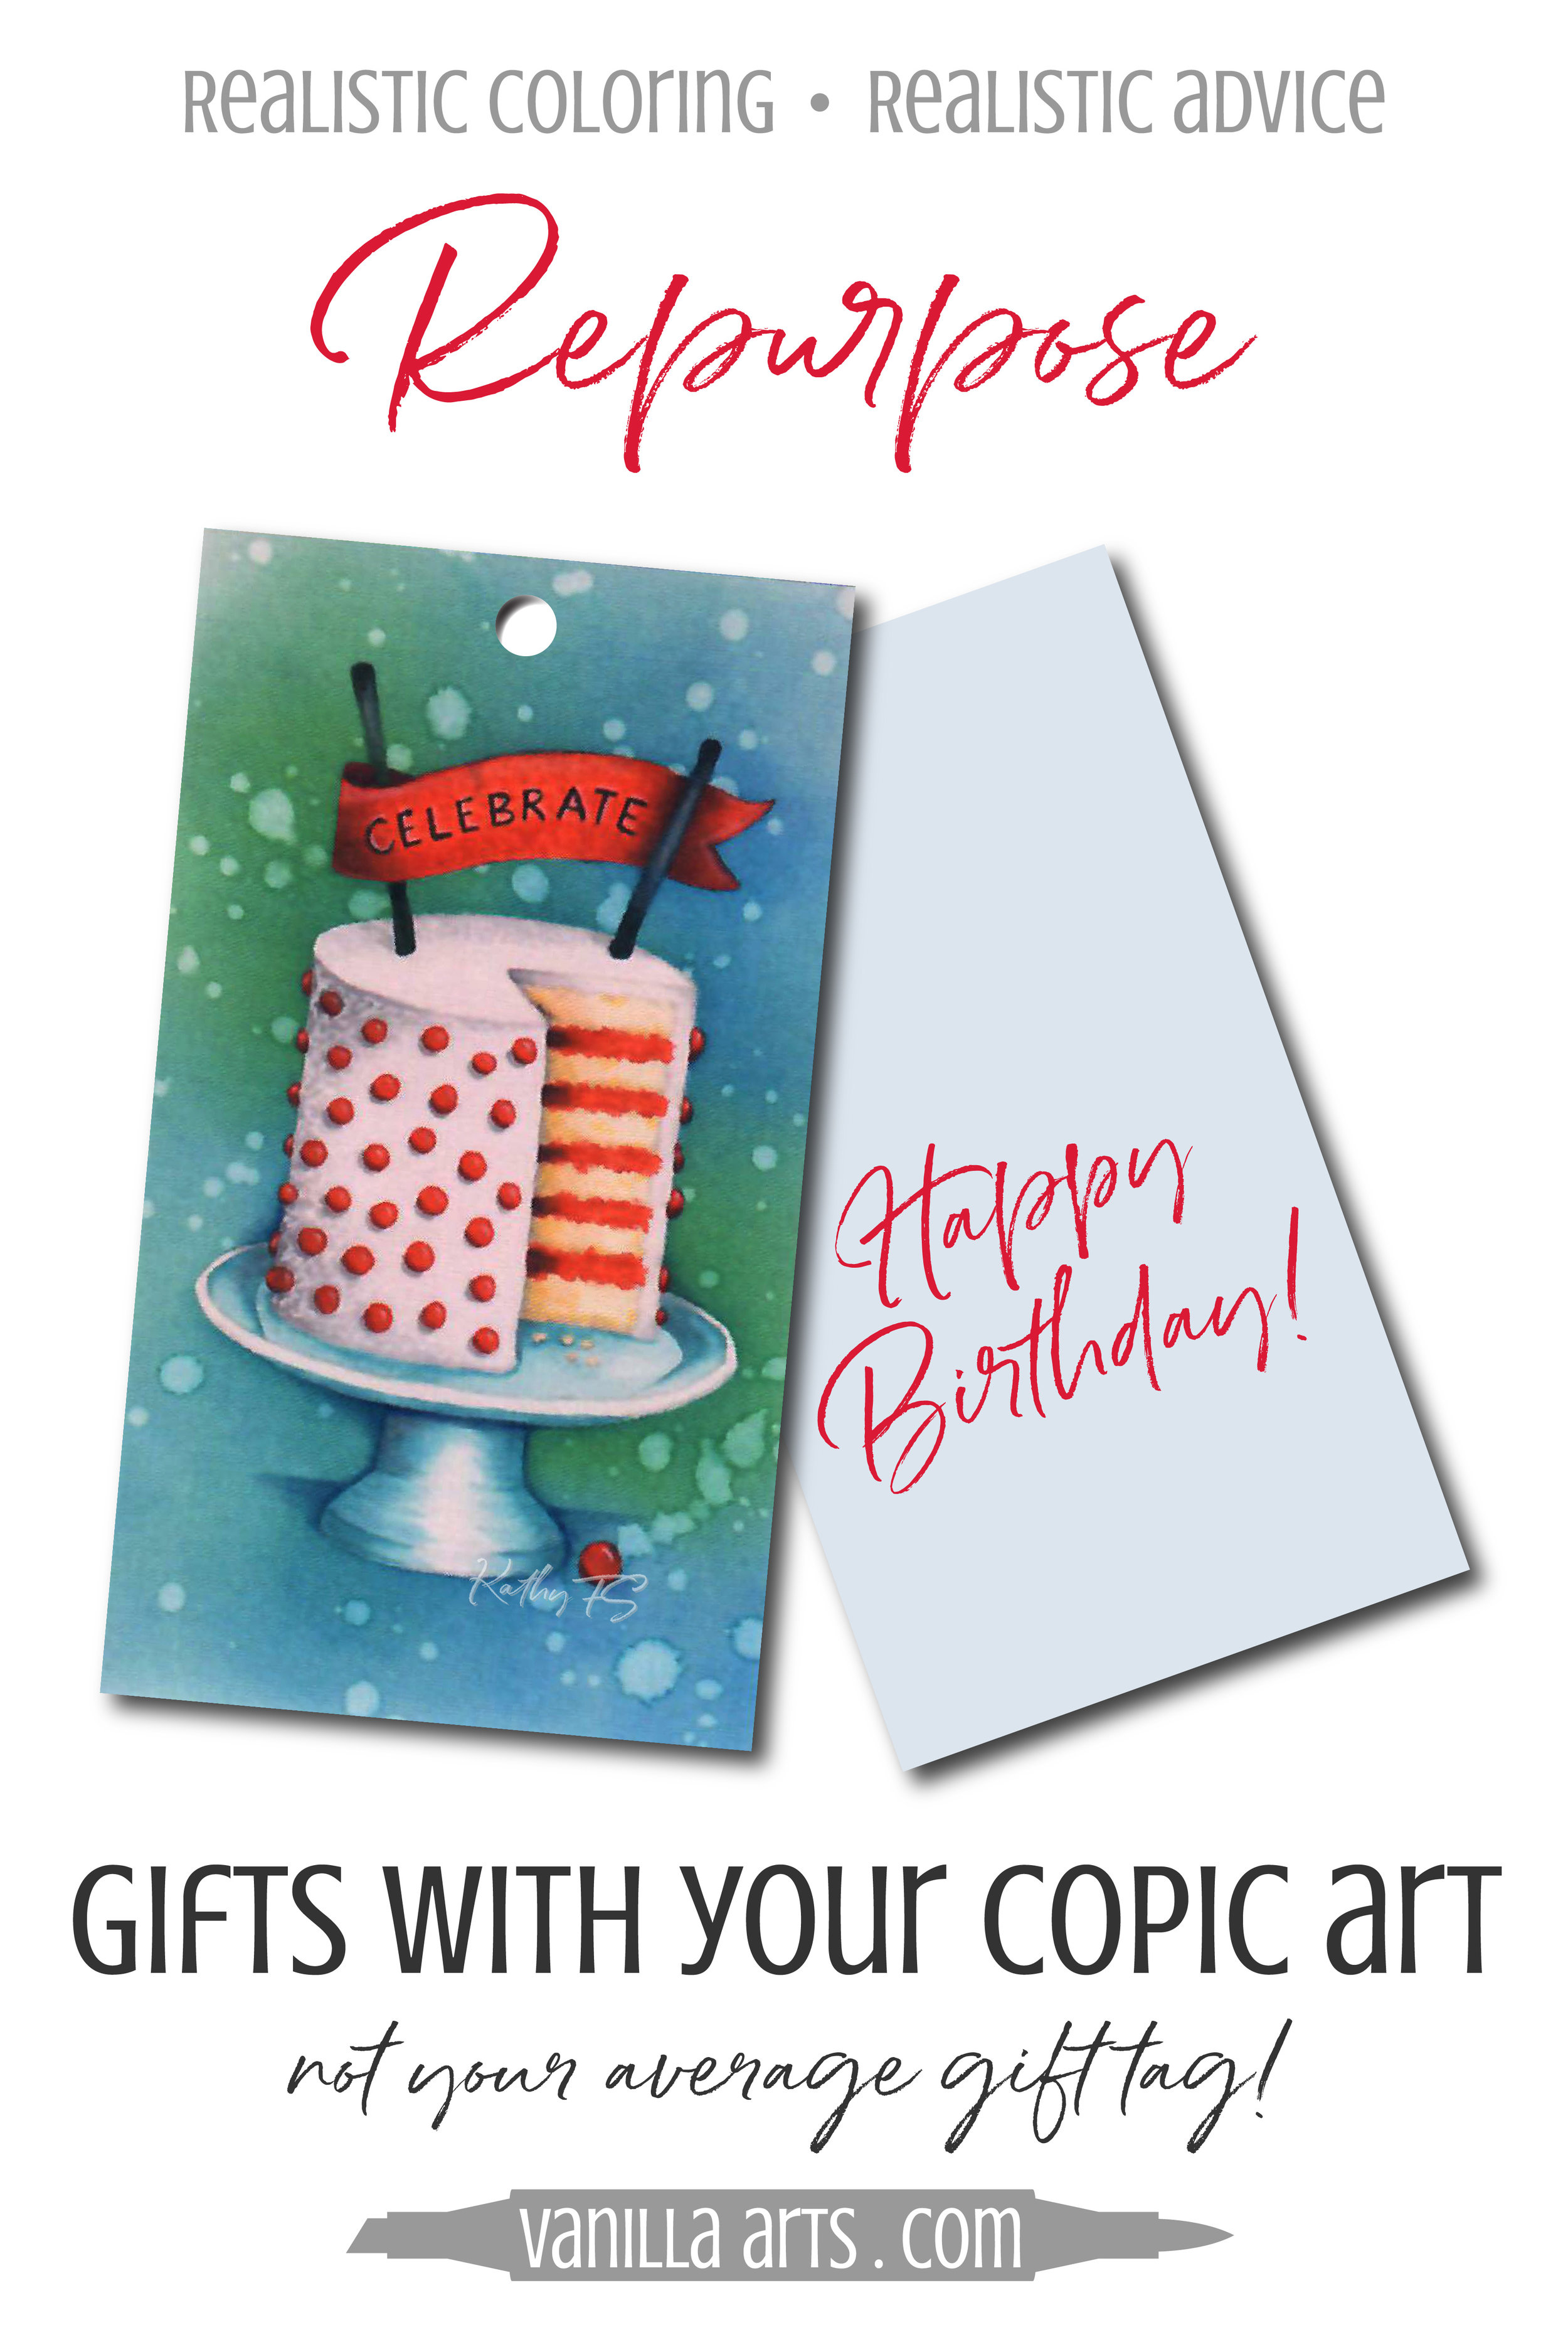 Professionally printed gift tags not only save time but they preserve your project long beyond the lifespan of Copic Marker ink. Copic is not lightfast! Preserve your coloring with this fun project from Kathy, our digital project wizard! | VanillaArts.com | #copicmarker #coloredpencil #realisticcoloring